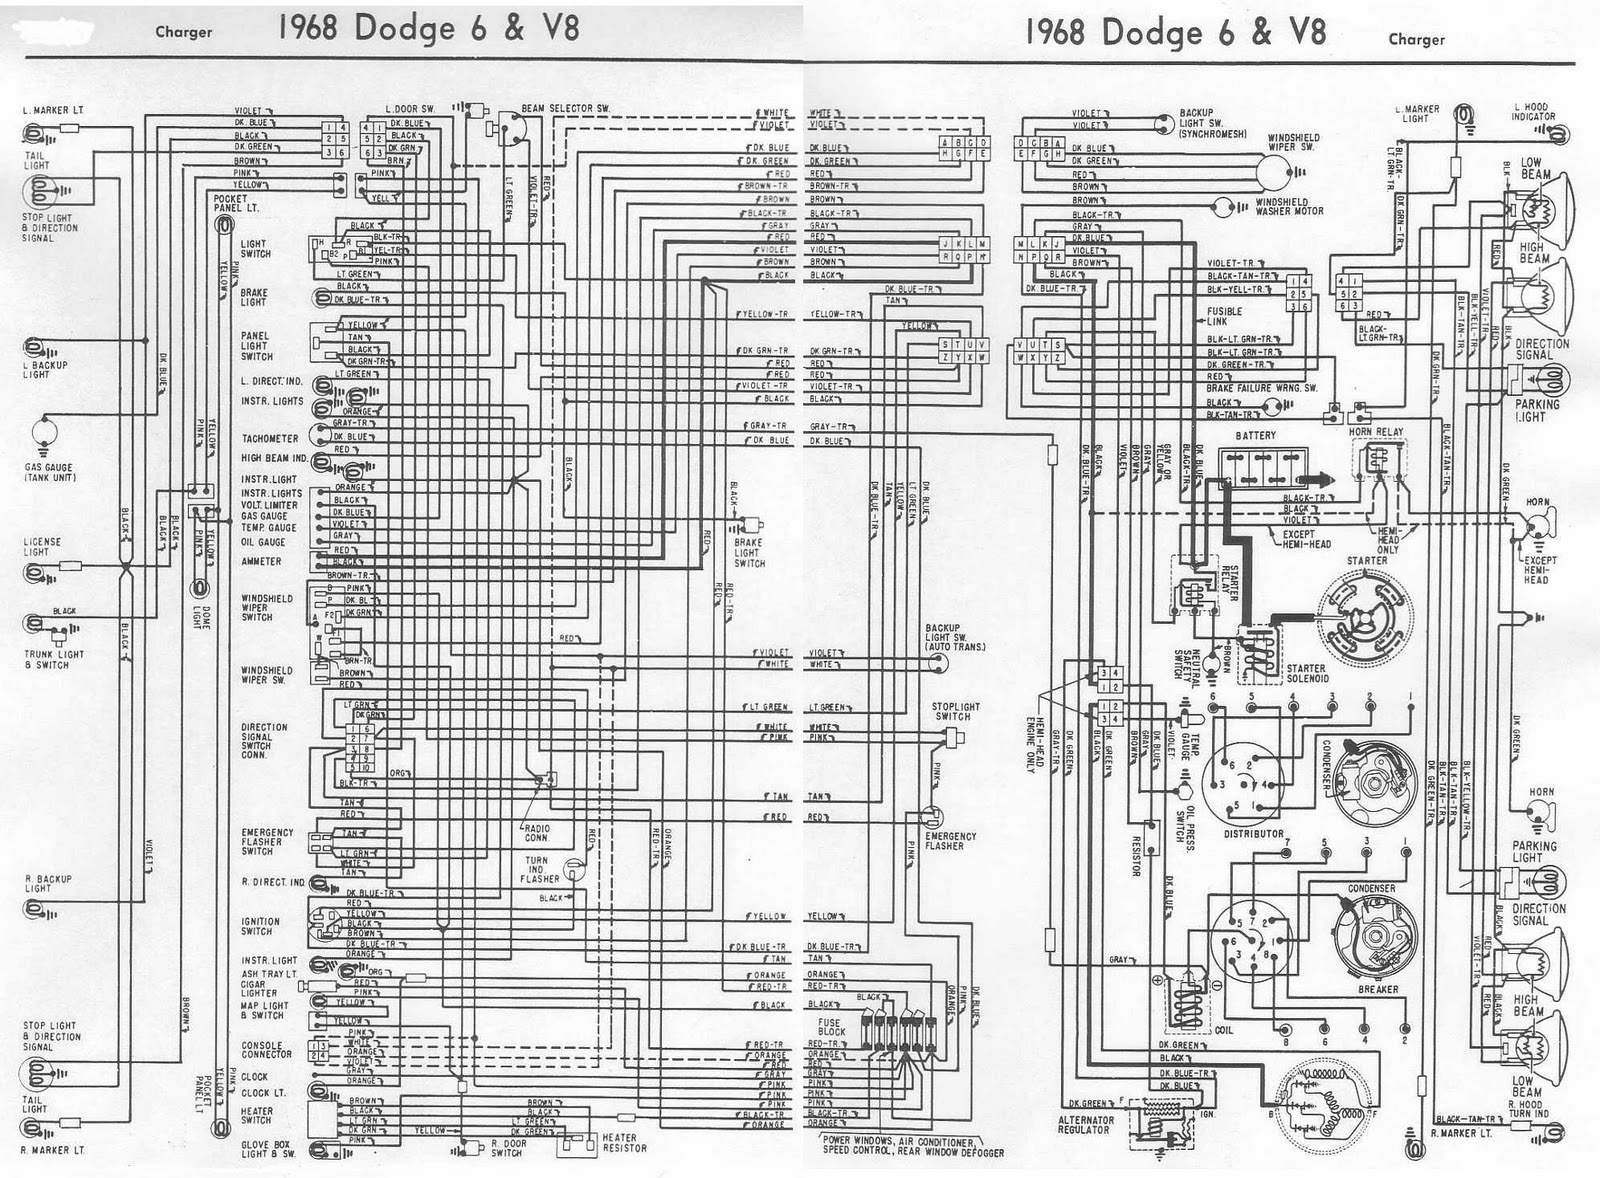 Dodge+Charger+1968+6+and+V8+Complete+Electrical+Wiring+Diagram dodge charger 1968 6 and v8 complete electrical wiring diagram 1967 Plymouth Fury Wiring-Diagram at bakdesigns.co